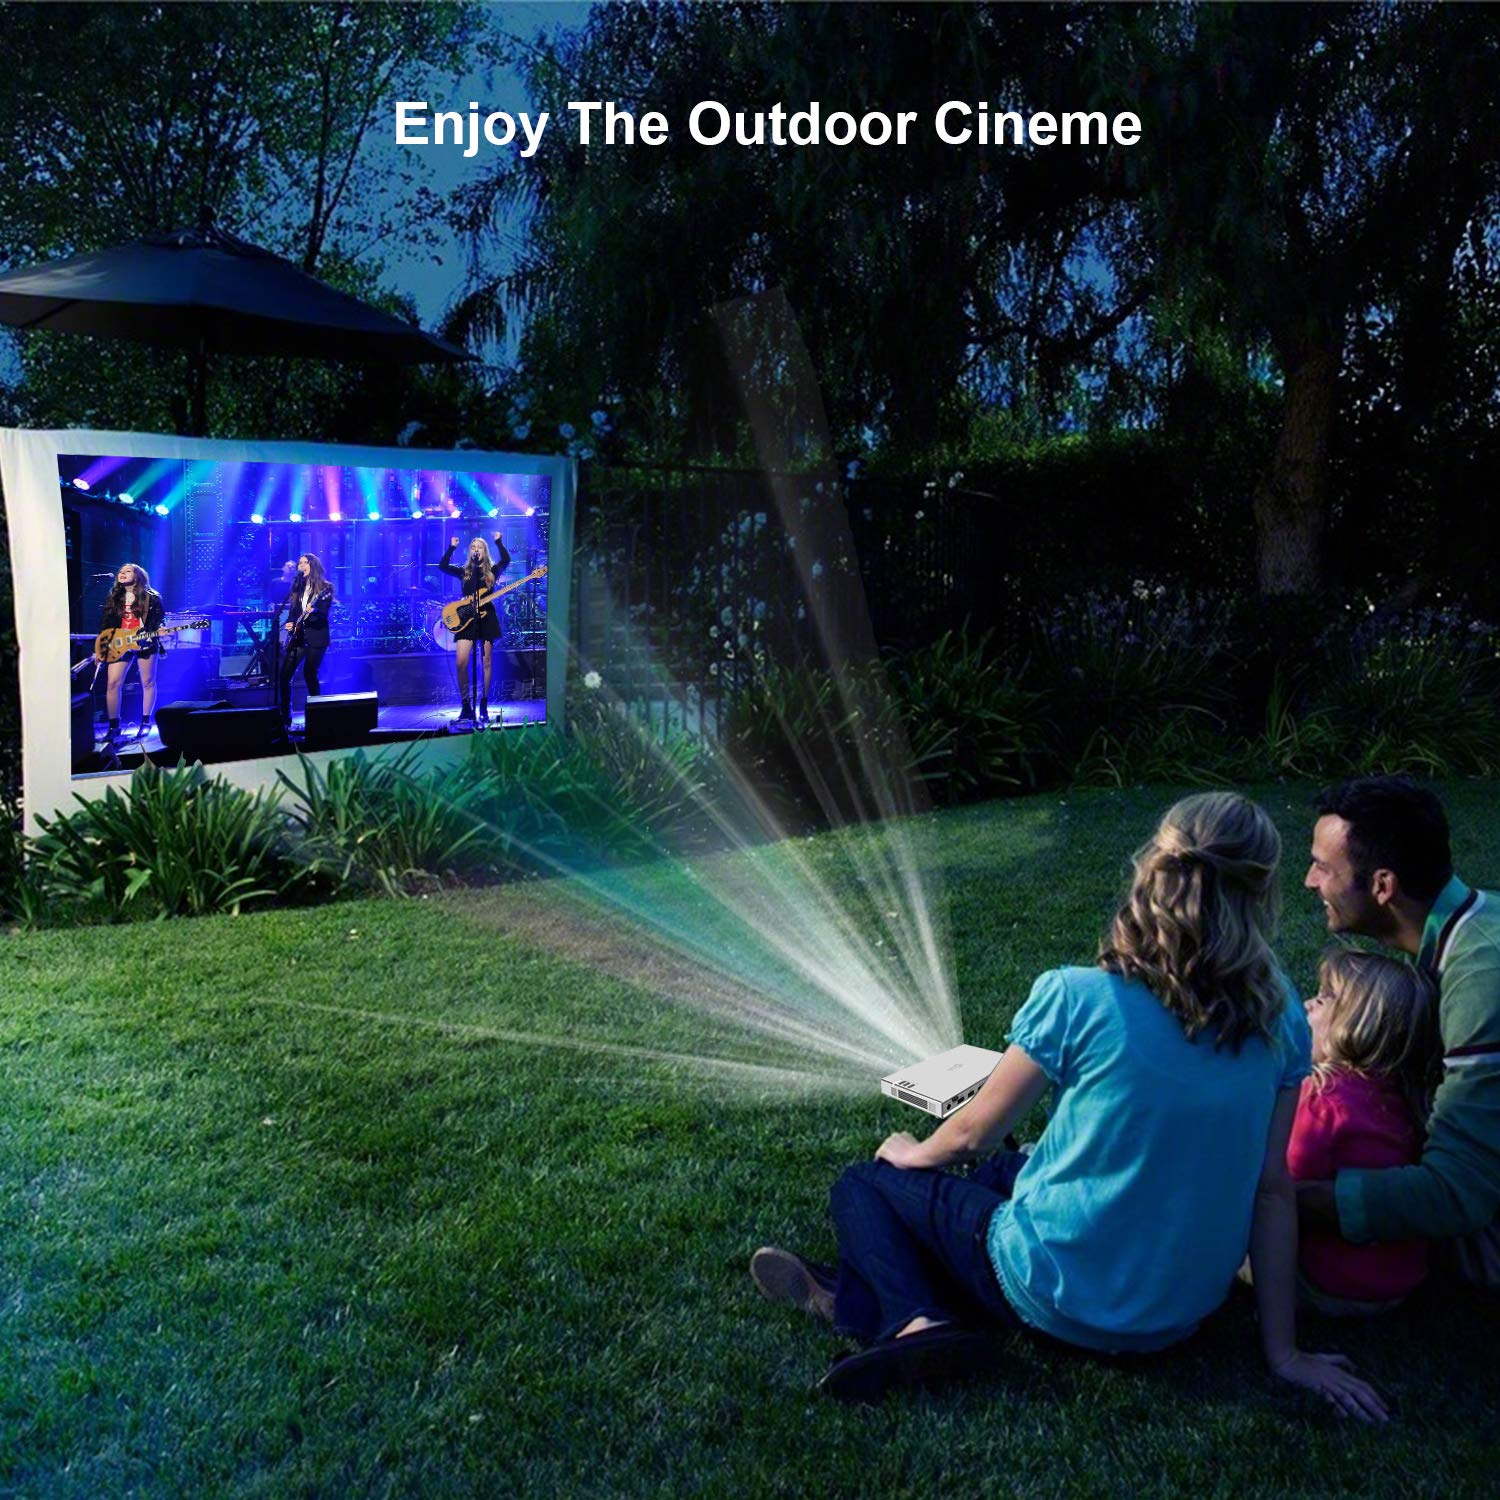 Compatible with Fire TV Stick//PS3//PS4 200 ANSI Lumens Pico Projector Silver TOUMEI T5 Mini Projector Portable Bluetooth Home Cinema Android DLP Projector Support 1080P 4K HDMI 3D DLP-LINK